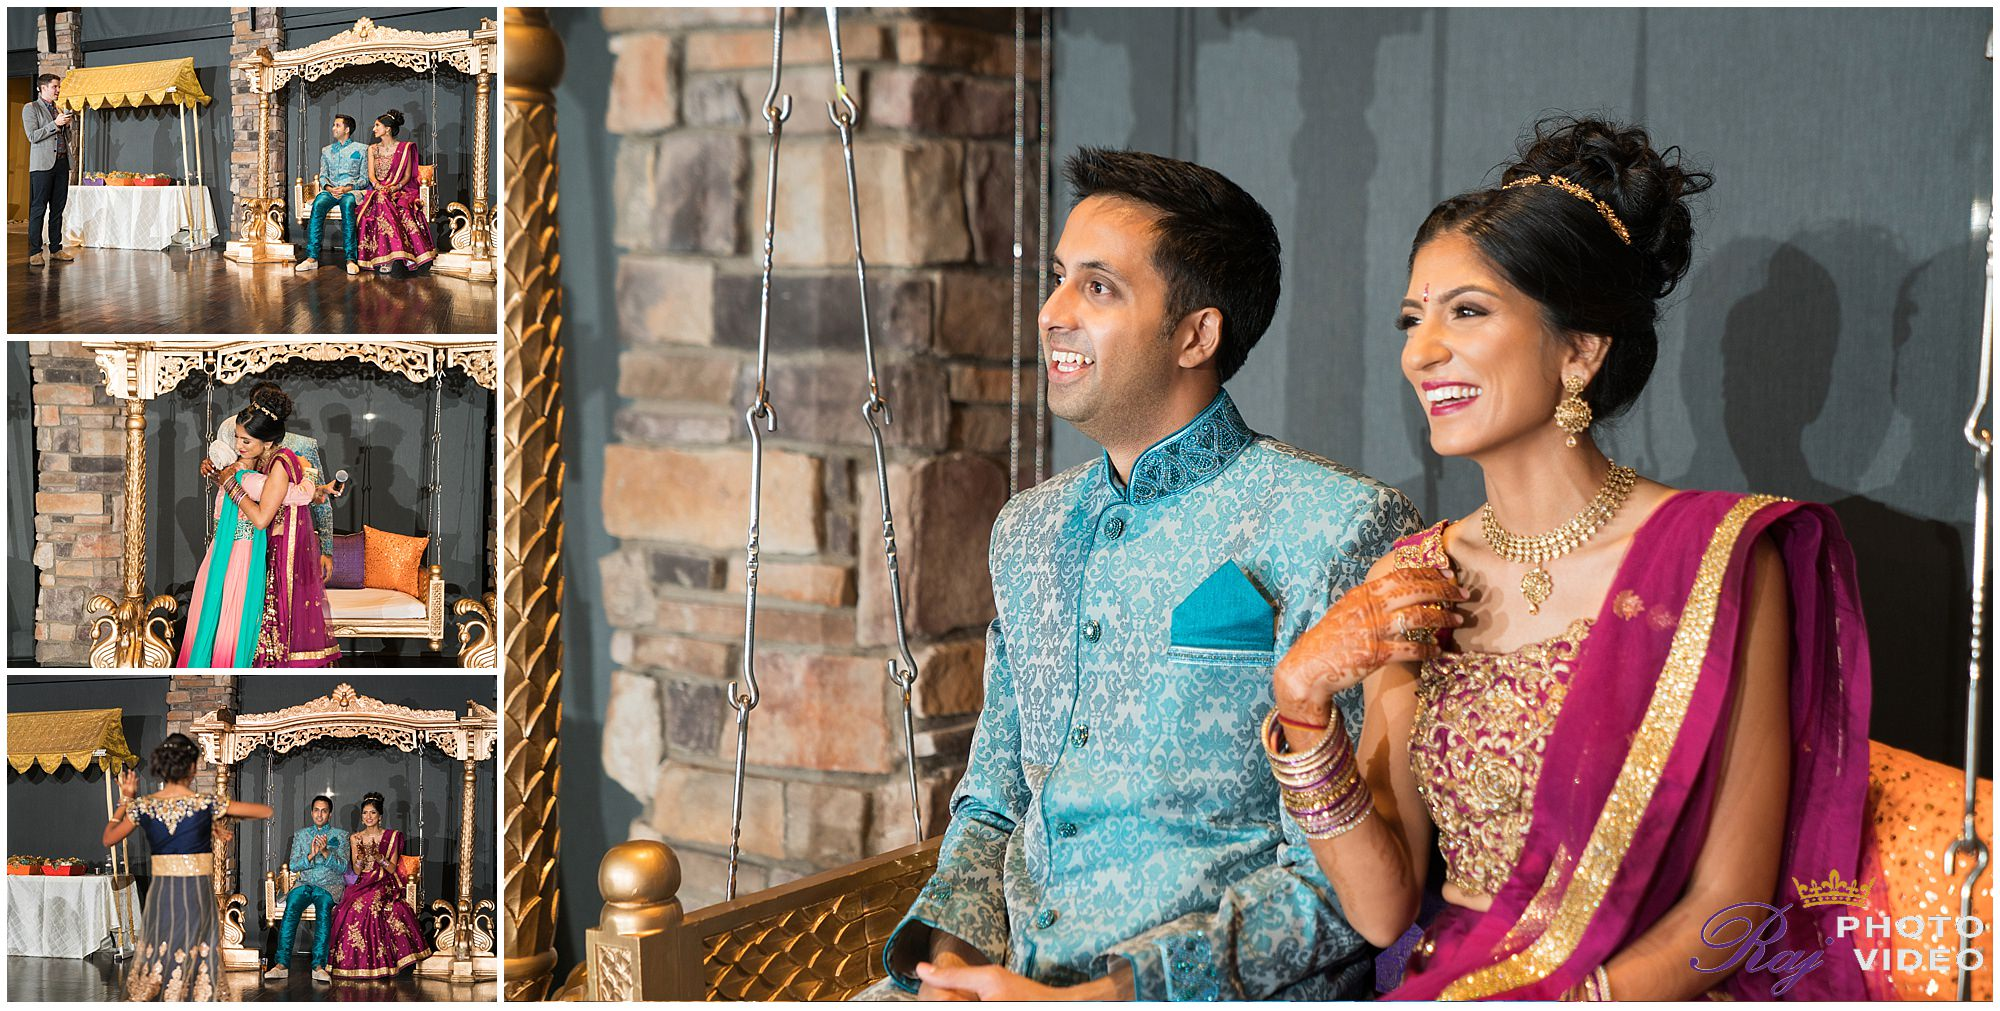 Aviano_Community_Center_Phoenix_Arizona_Indian_Wedding_Sangeet_Sapna_Shyam-4.jpg